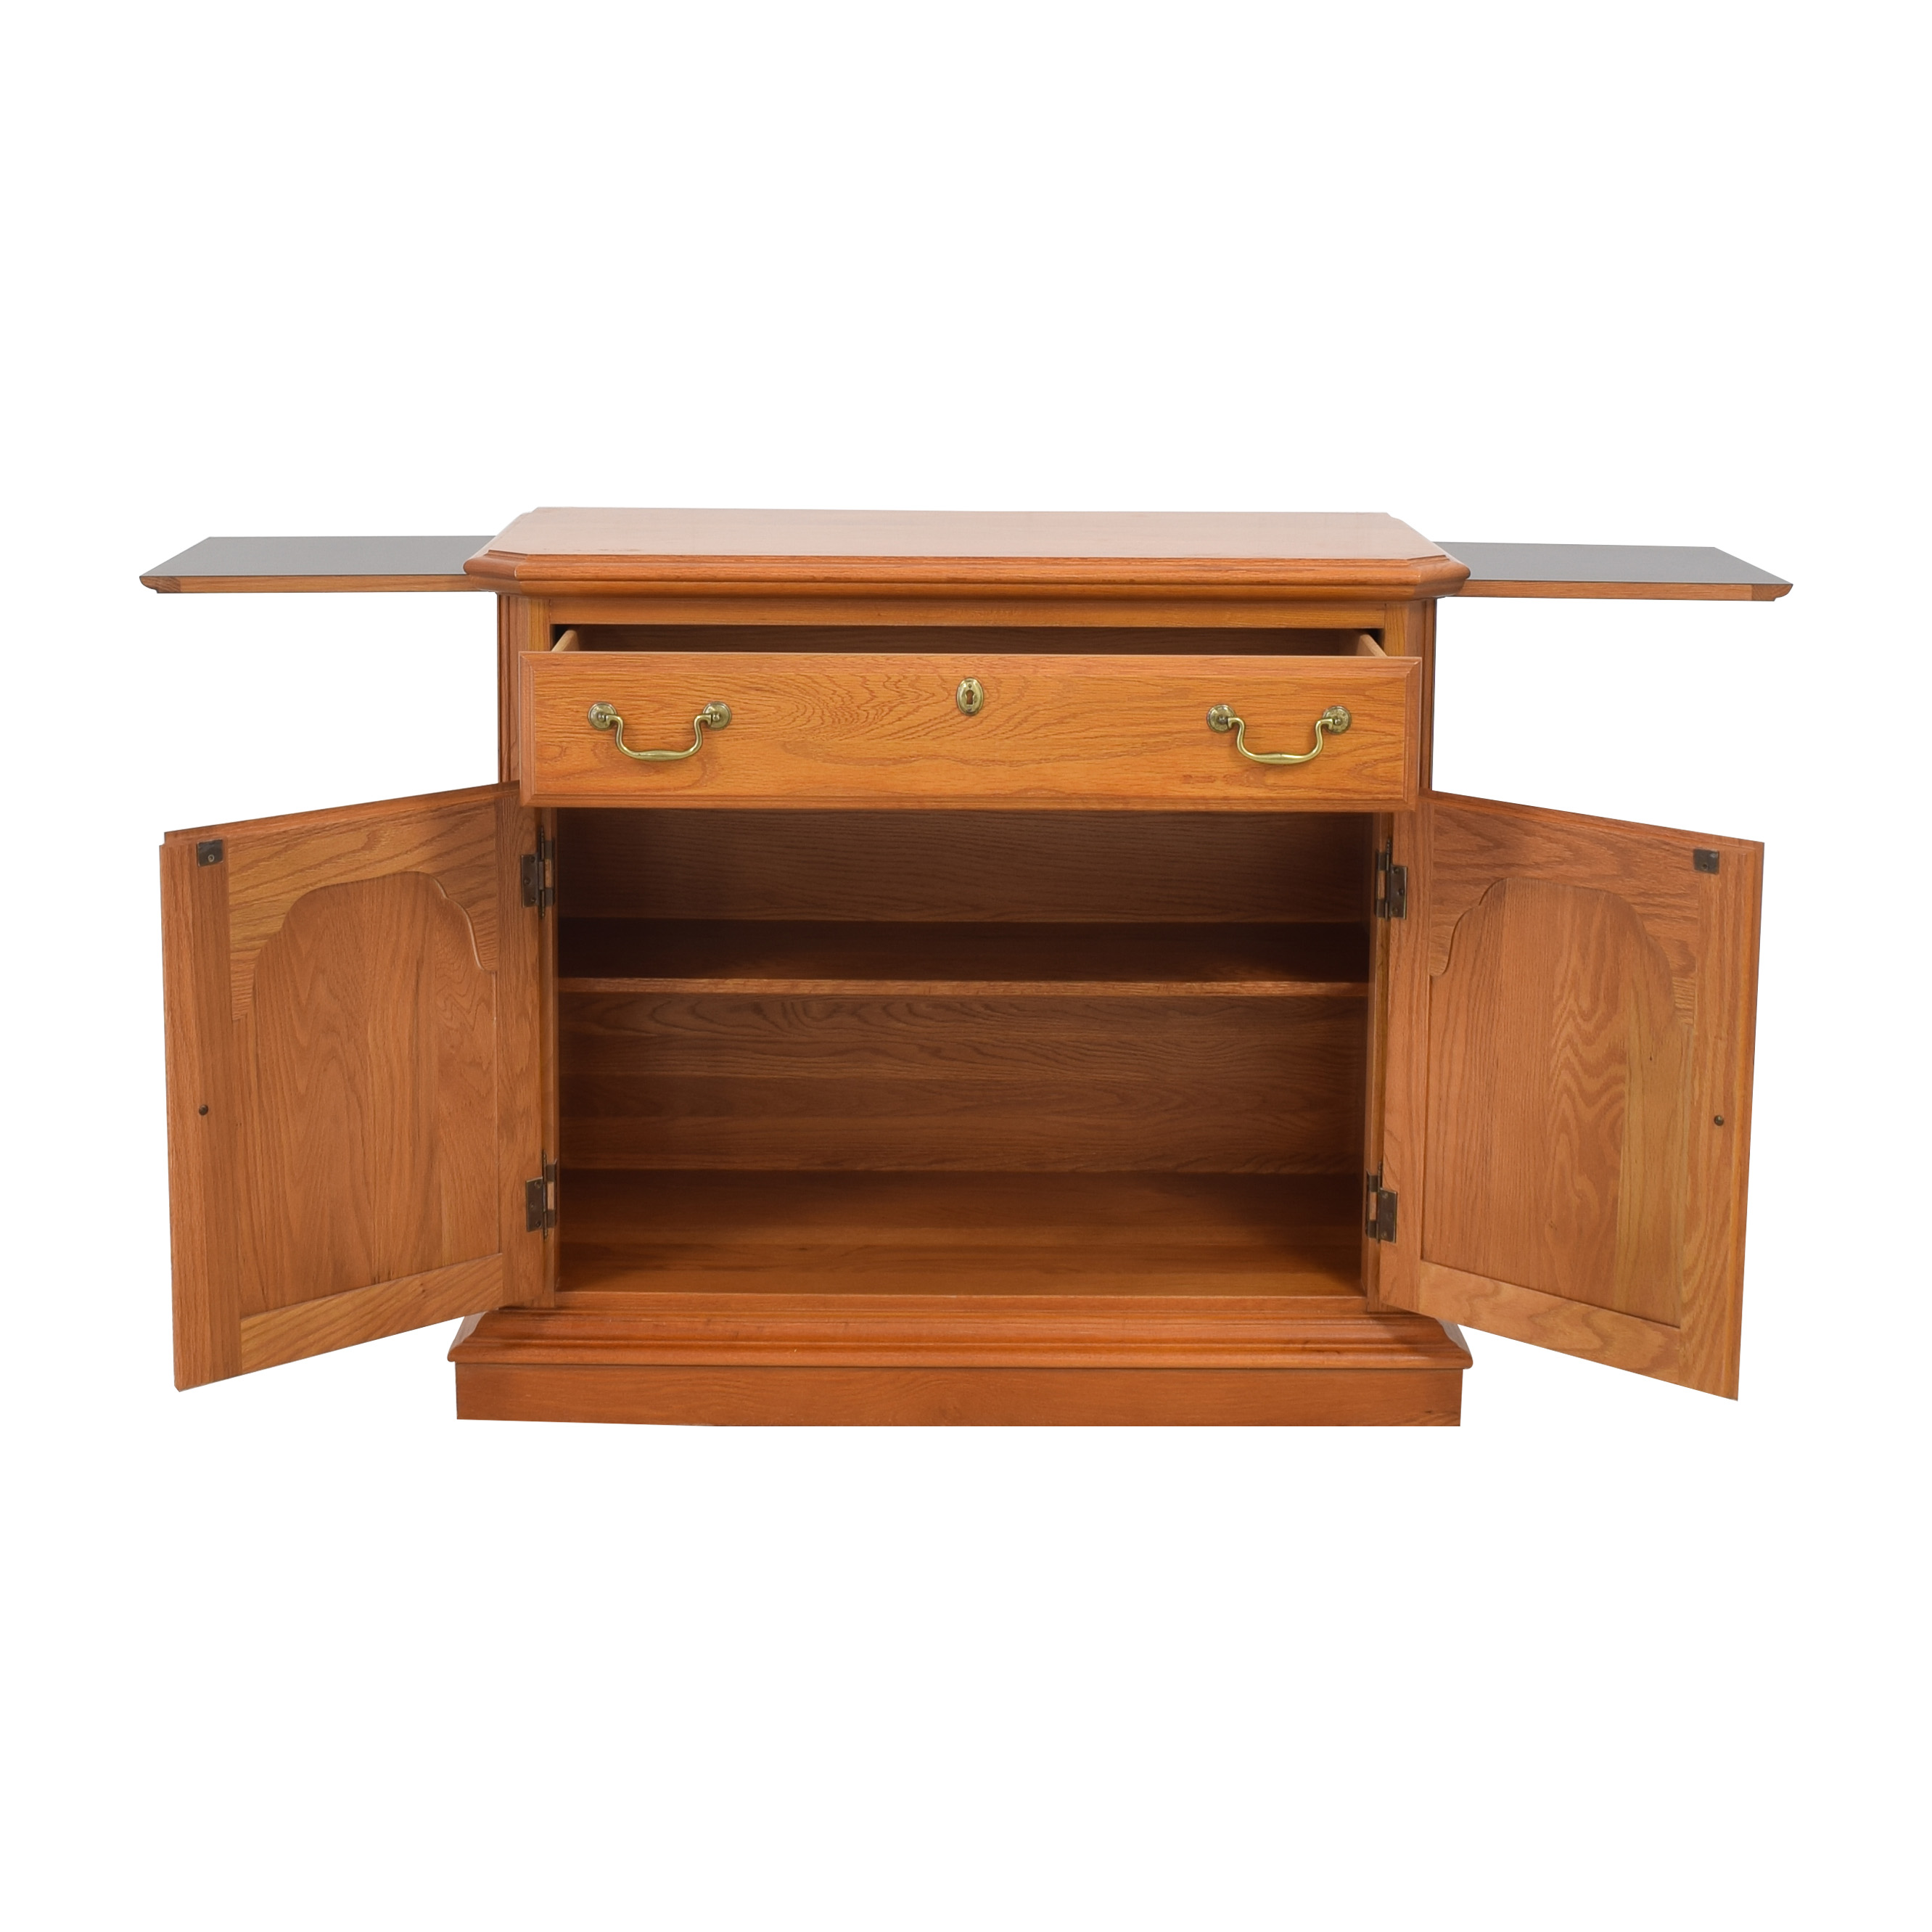 Sumter Cabinet Co. Sumter Cabinet Company Bar Cart Buffet Sideboard